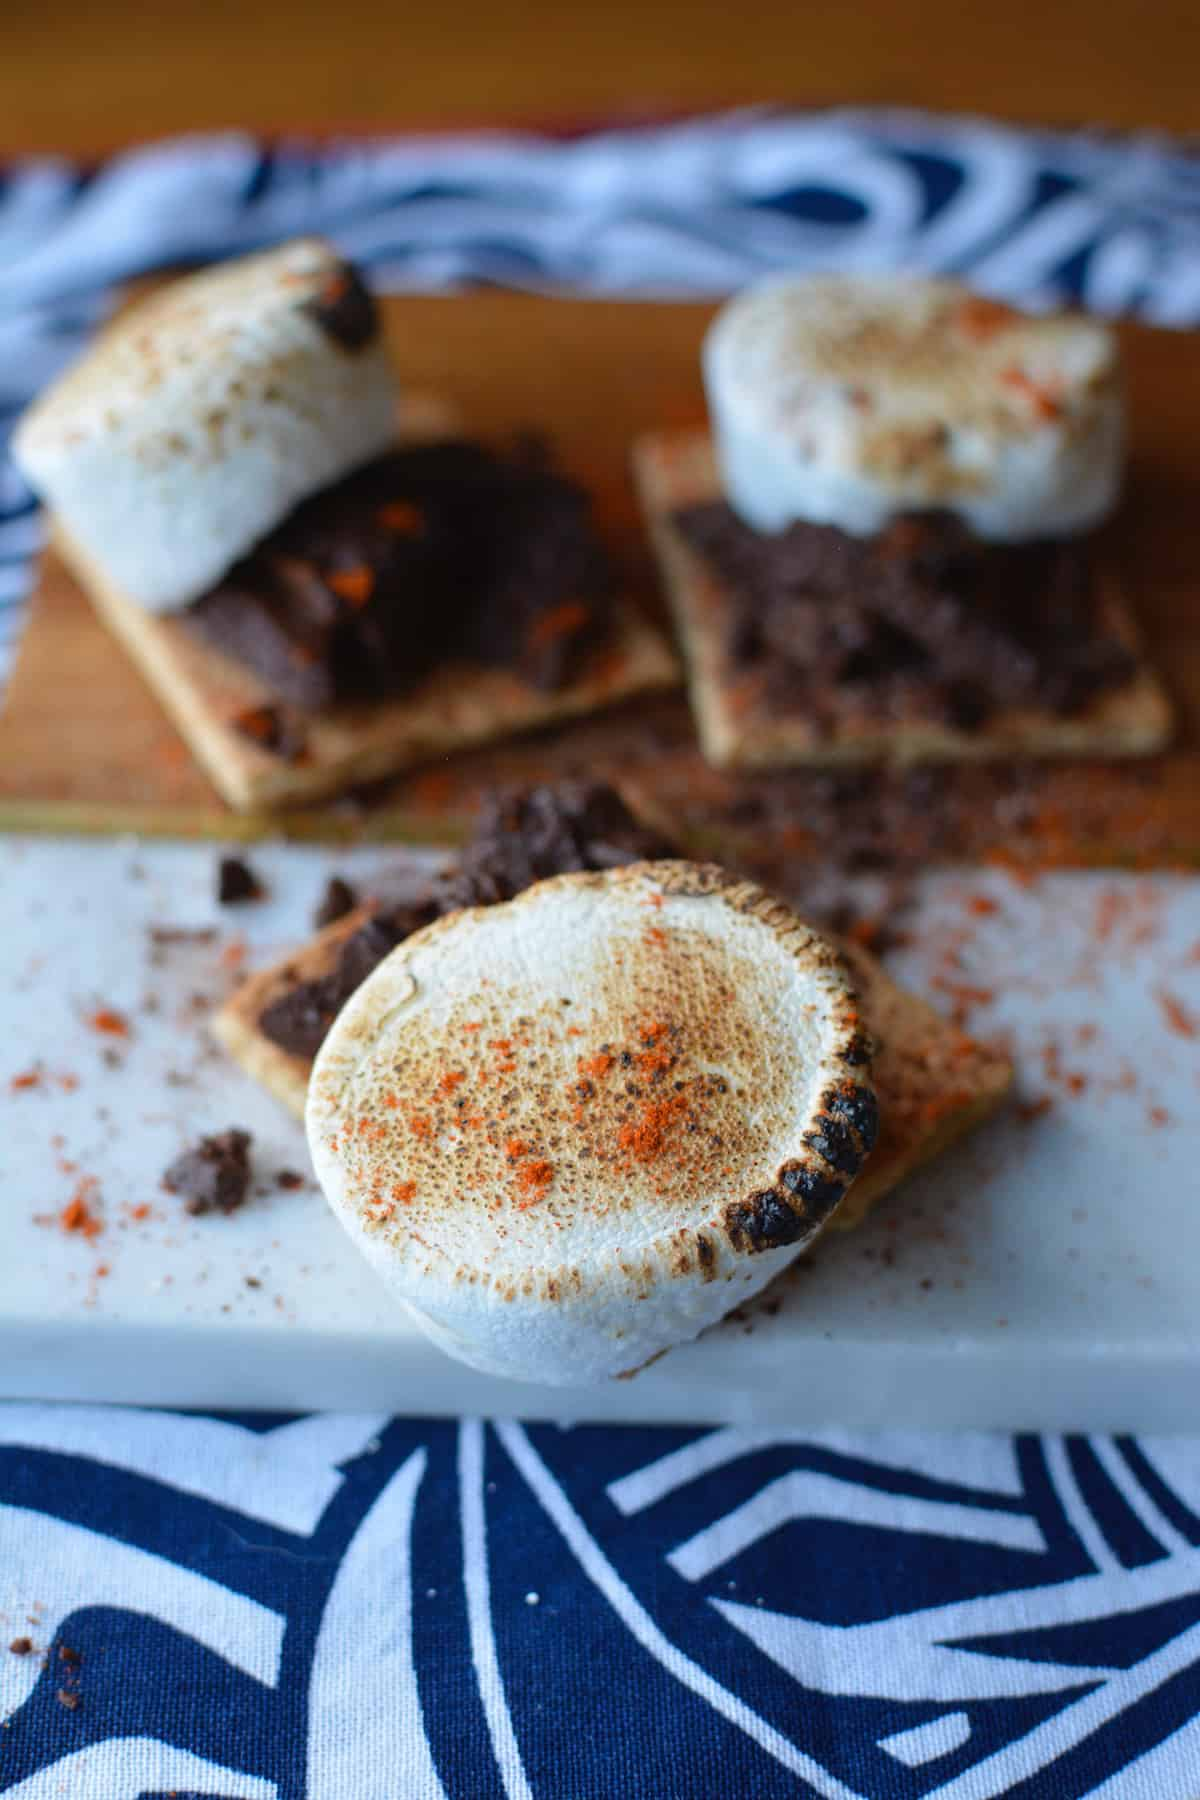 A toasted marshmallow with chili powder on top sitting on a graham cracker with chocolate.